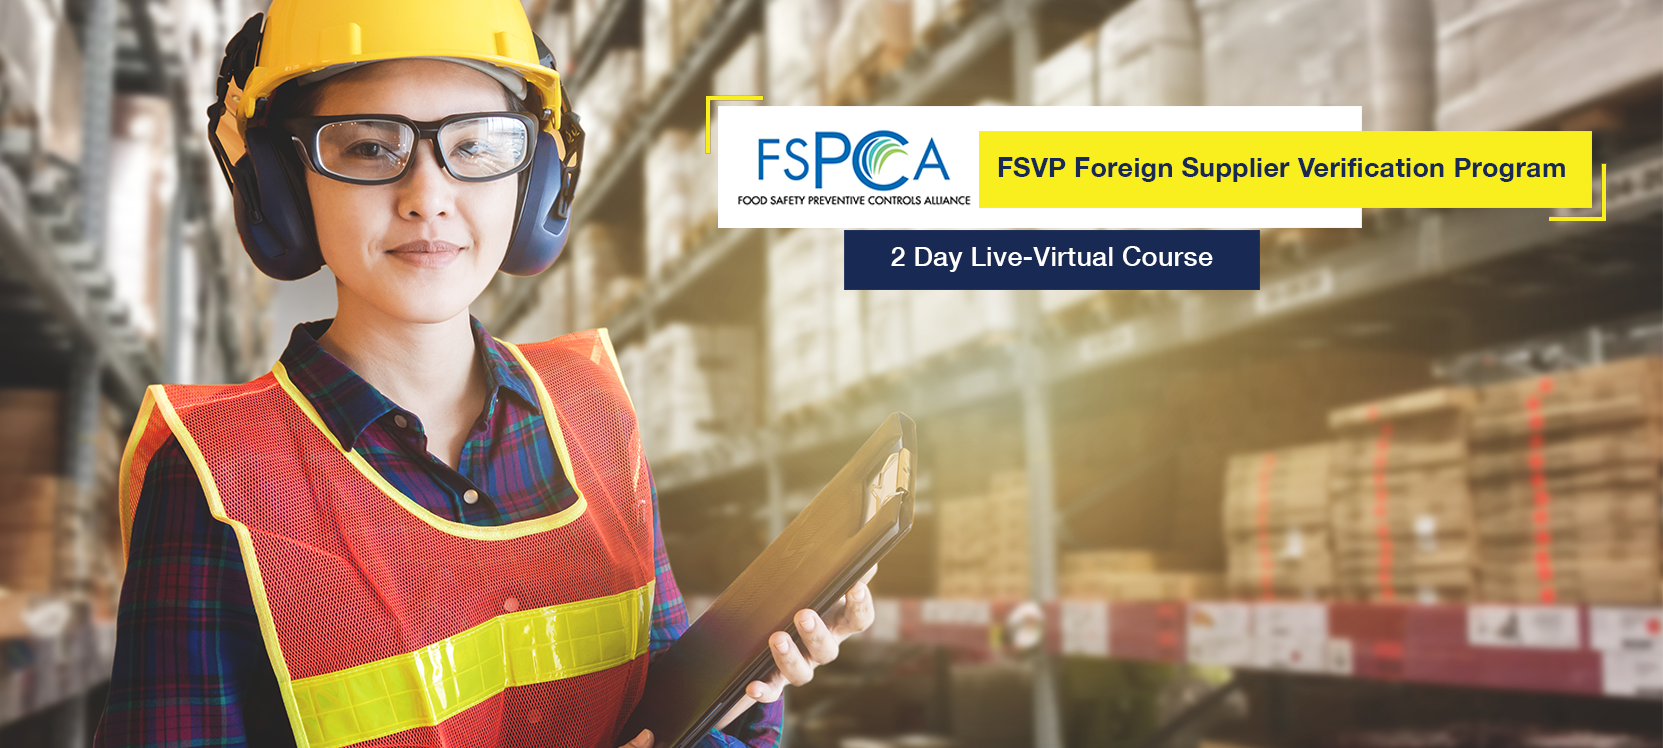 FSPCA FSVP Foreign Supplier Verification Programs Online Training